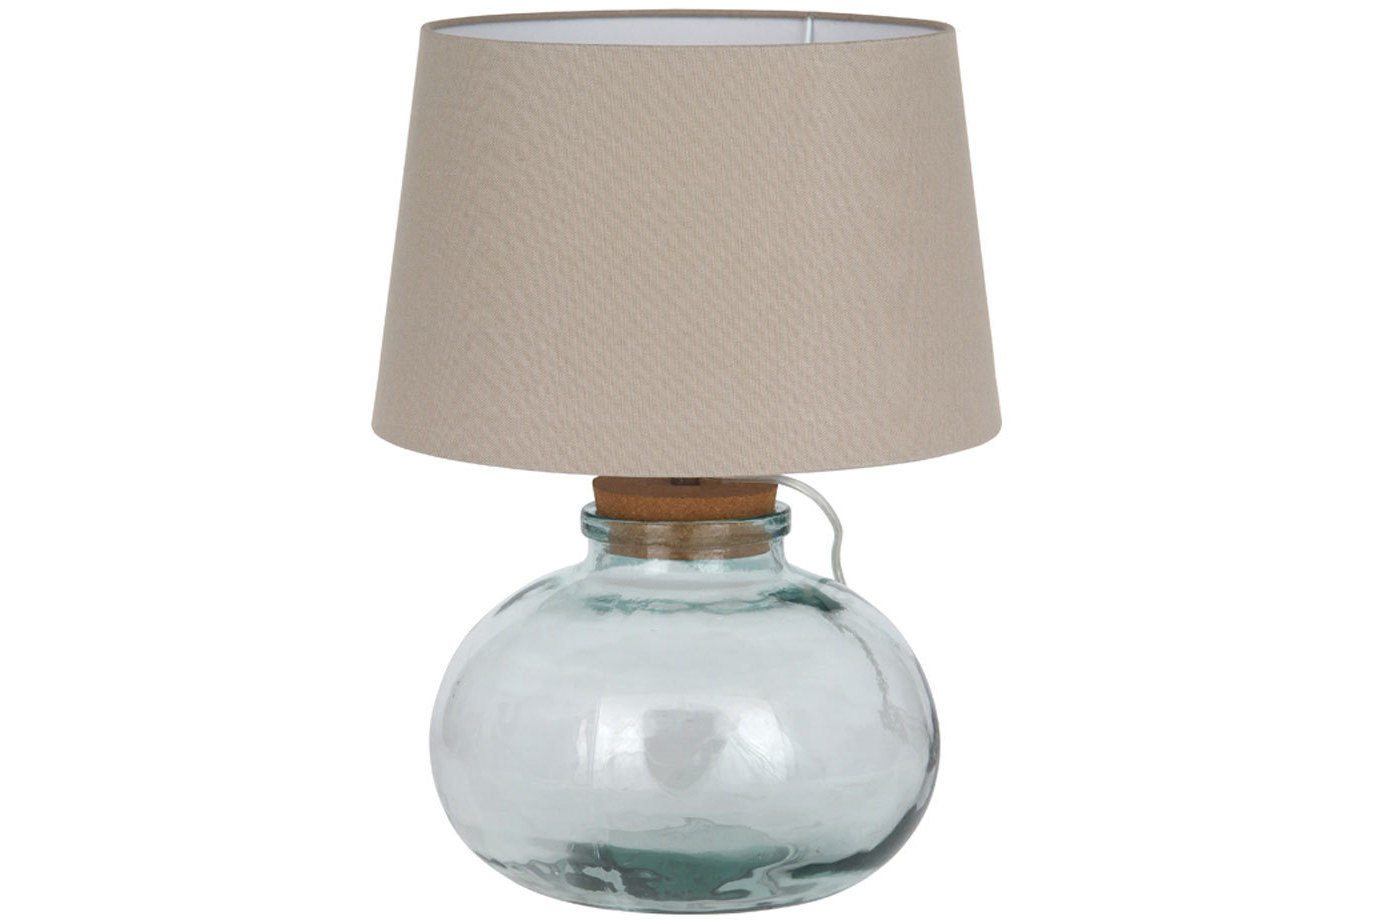 Sofa Covers Cork Ireland picture on clear recycled glass table lamp